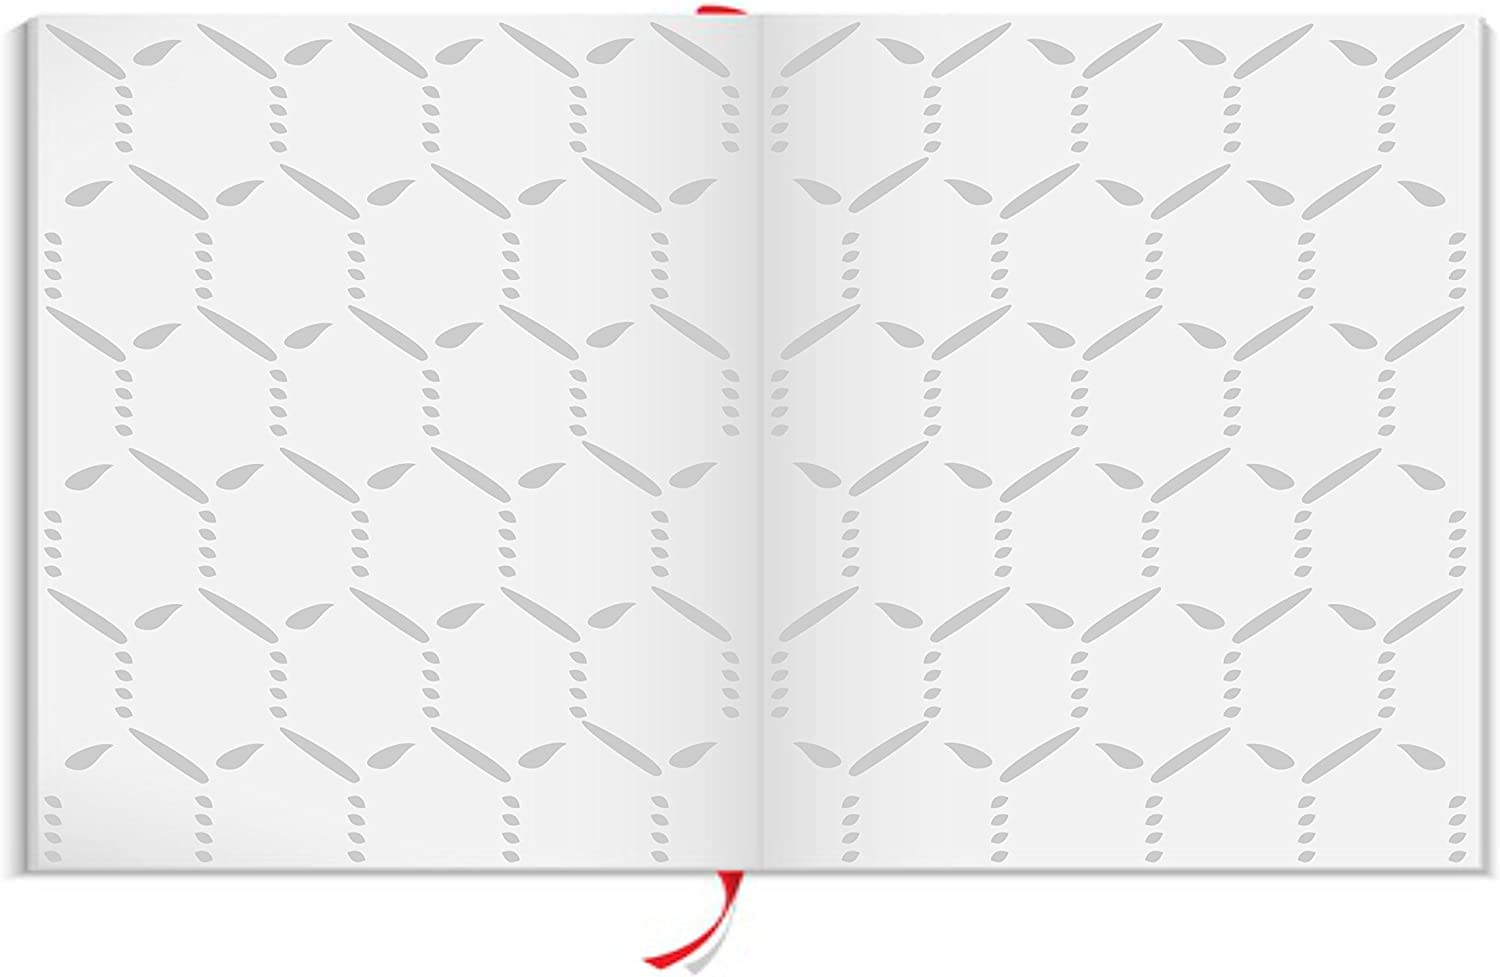 S - Reusable Shape Pattern Poultry Netting Wall Stencil Template 11.5 x 11.5cm Use on Paper Projects Scrapbook Journal Walls Floors Fabric Furniture Glass Wood etc. Chicken Wire Stencil